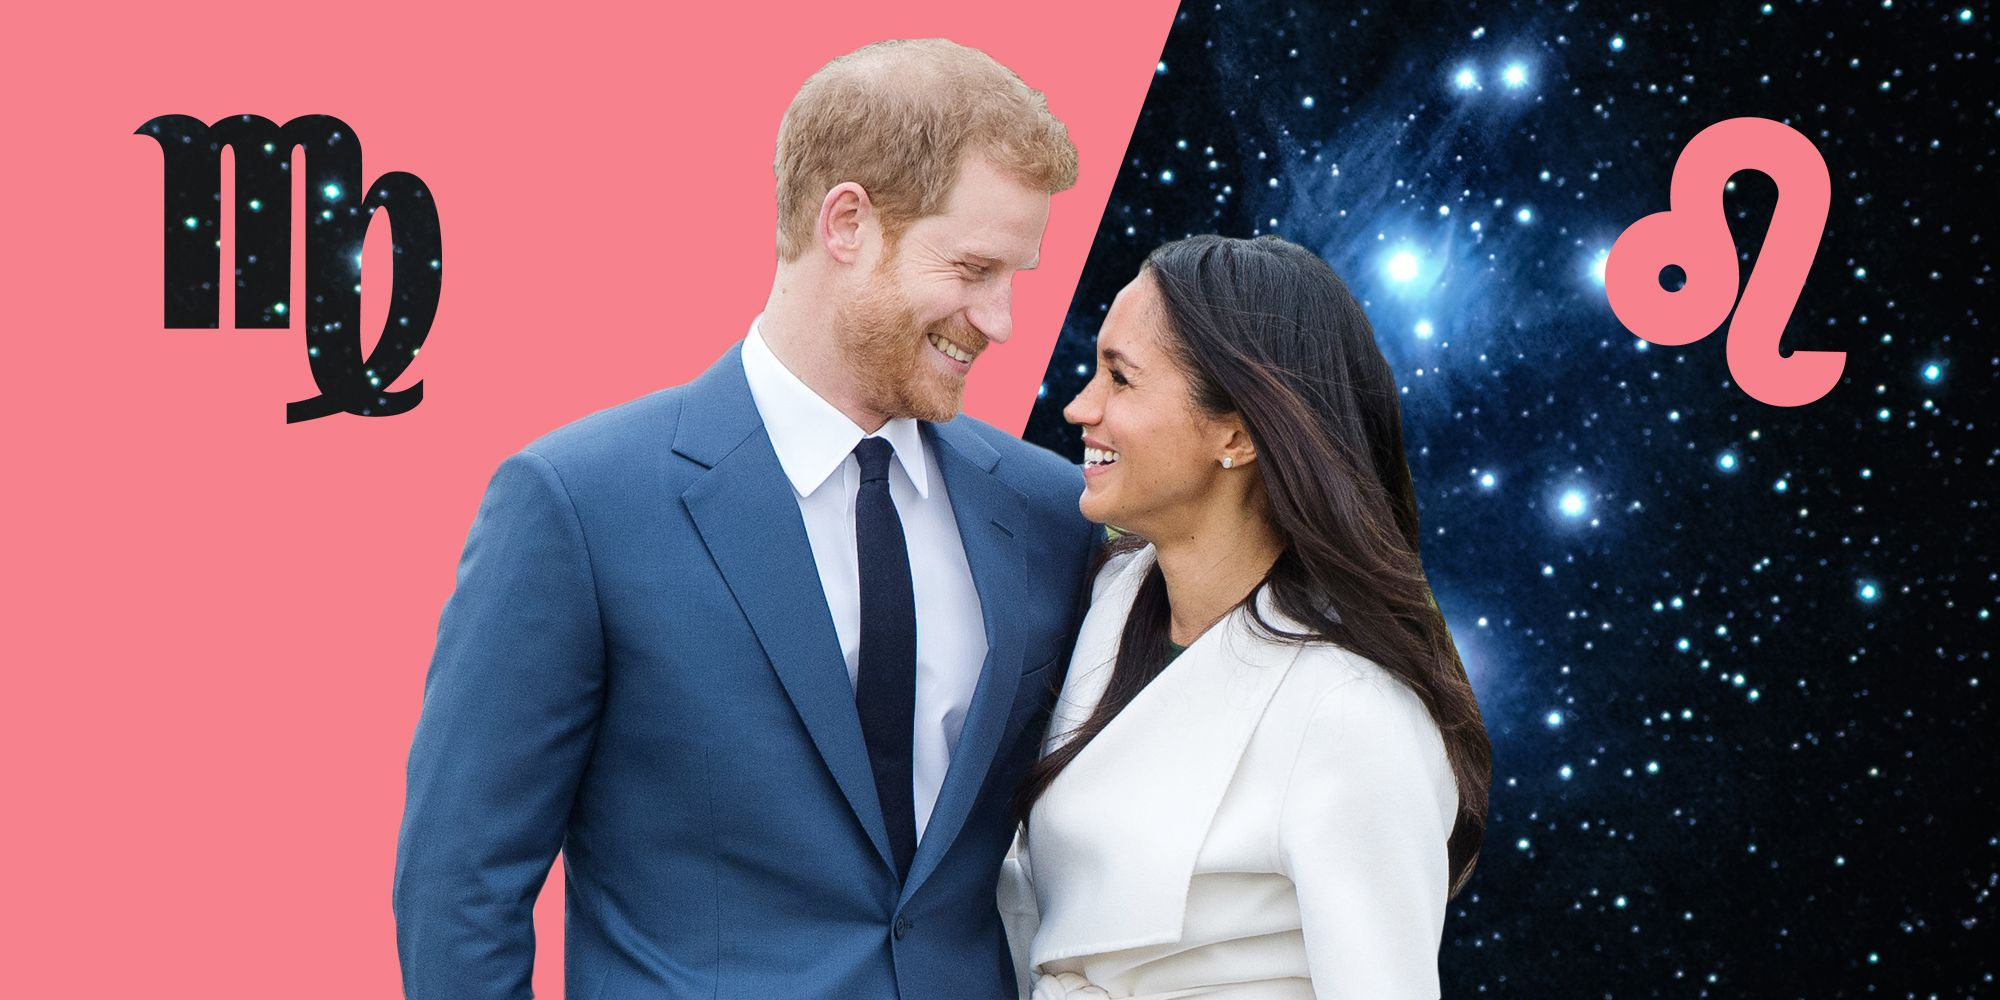 Prince Harry and Meghan Markle's Compatibility, Based on